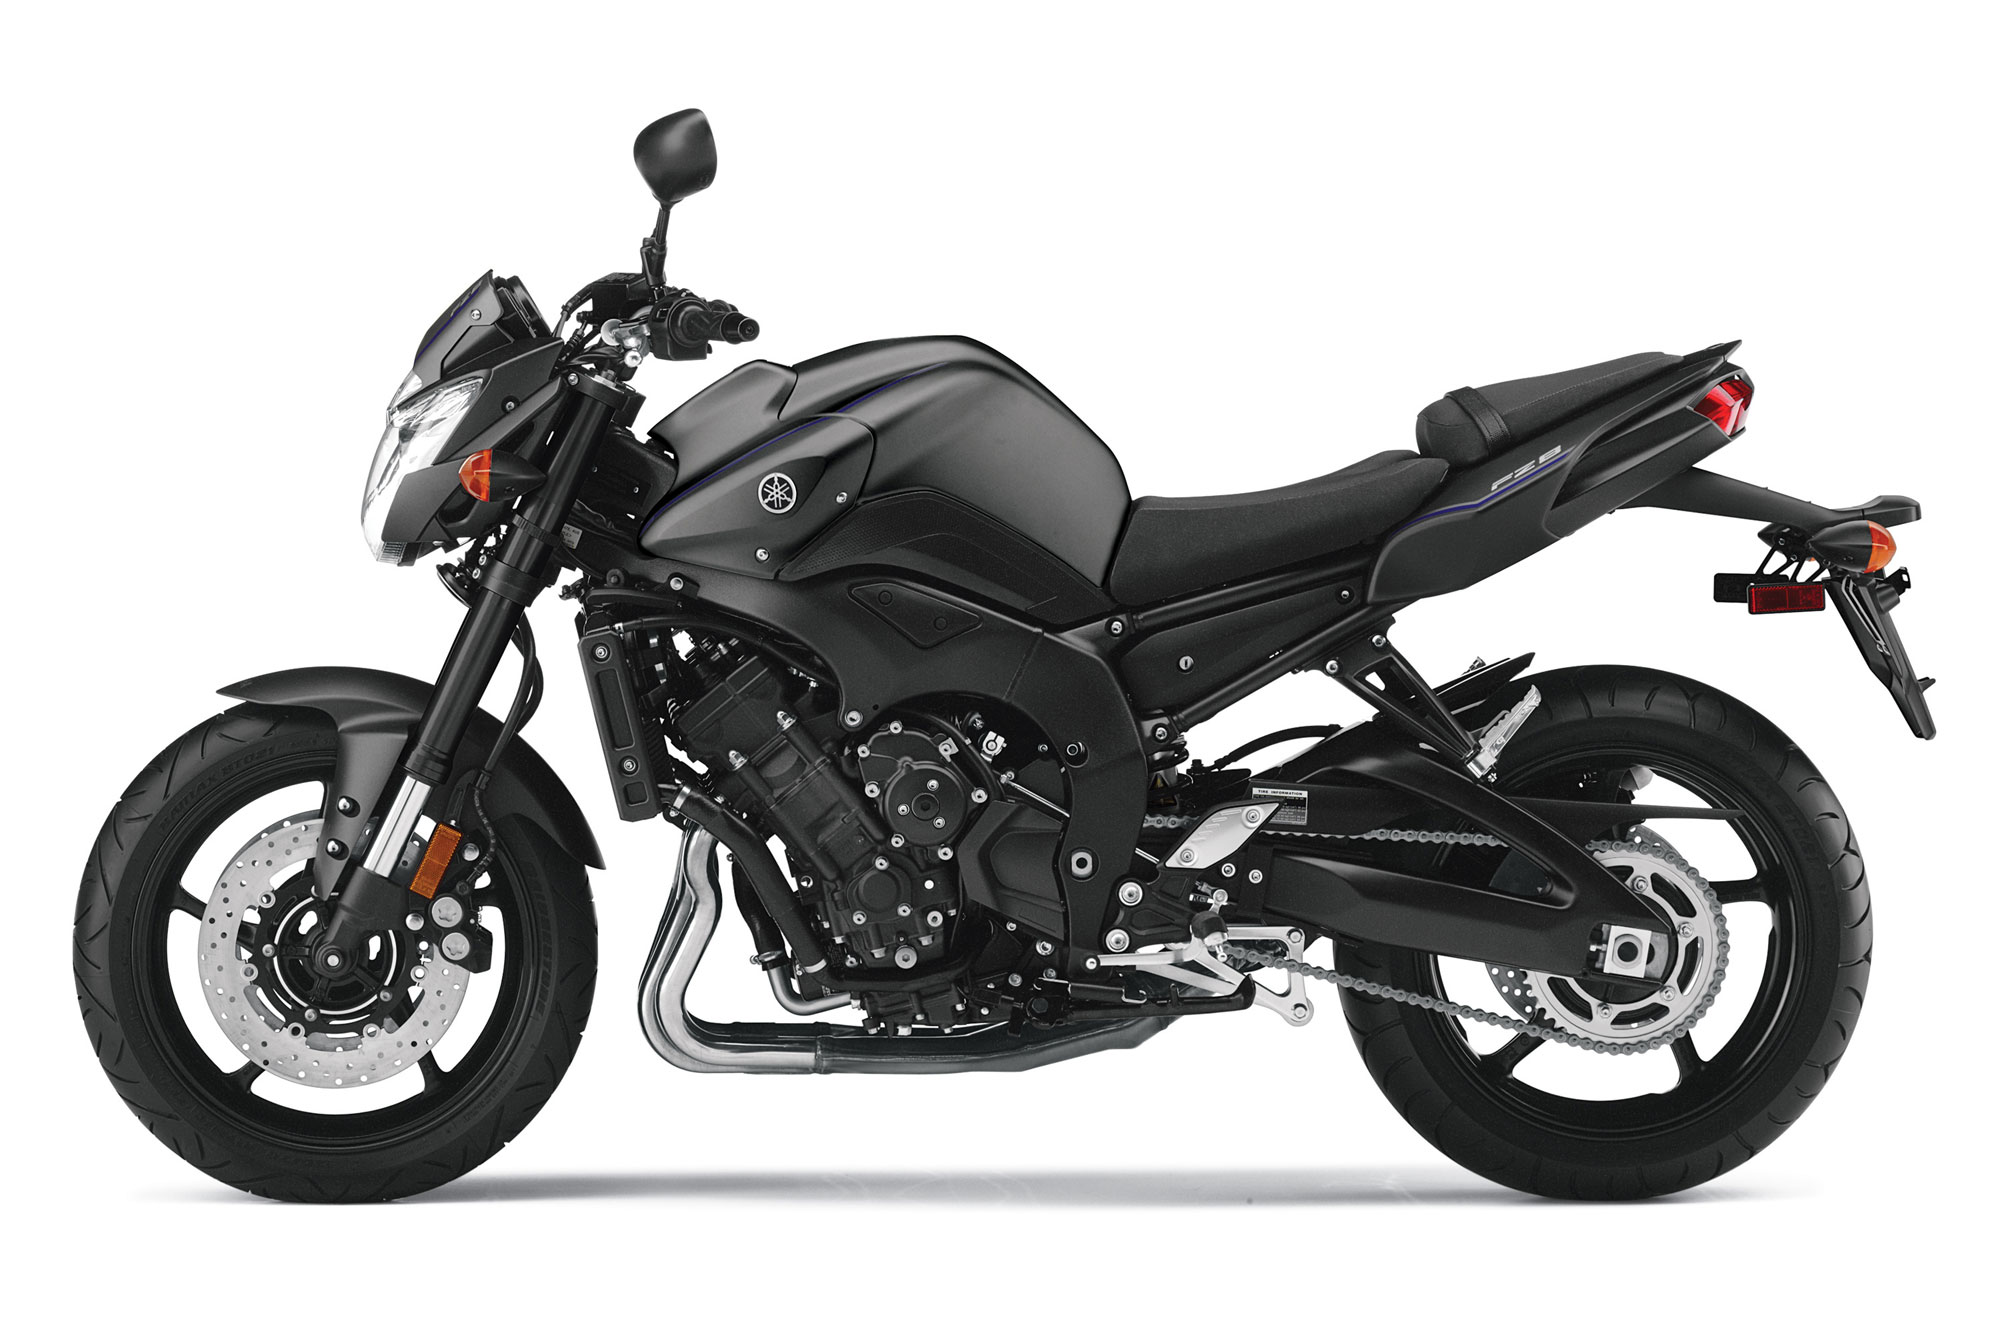 yamaha fz8 specs 2011 2012 autoevolution. Black Bedroom Furniture Sets. Home Design Ideas